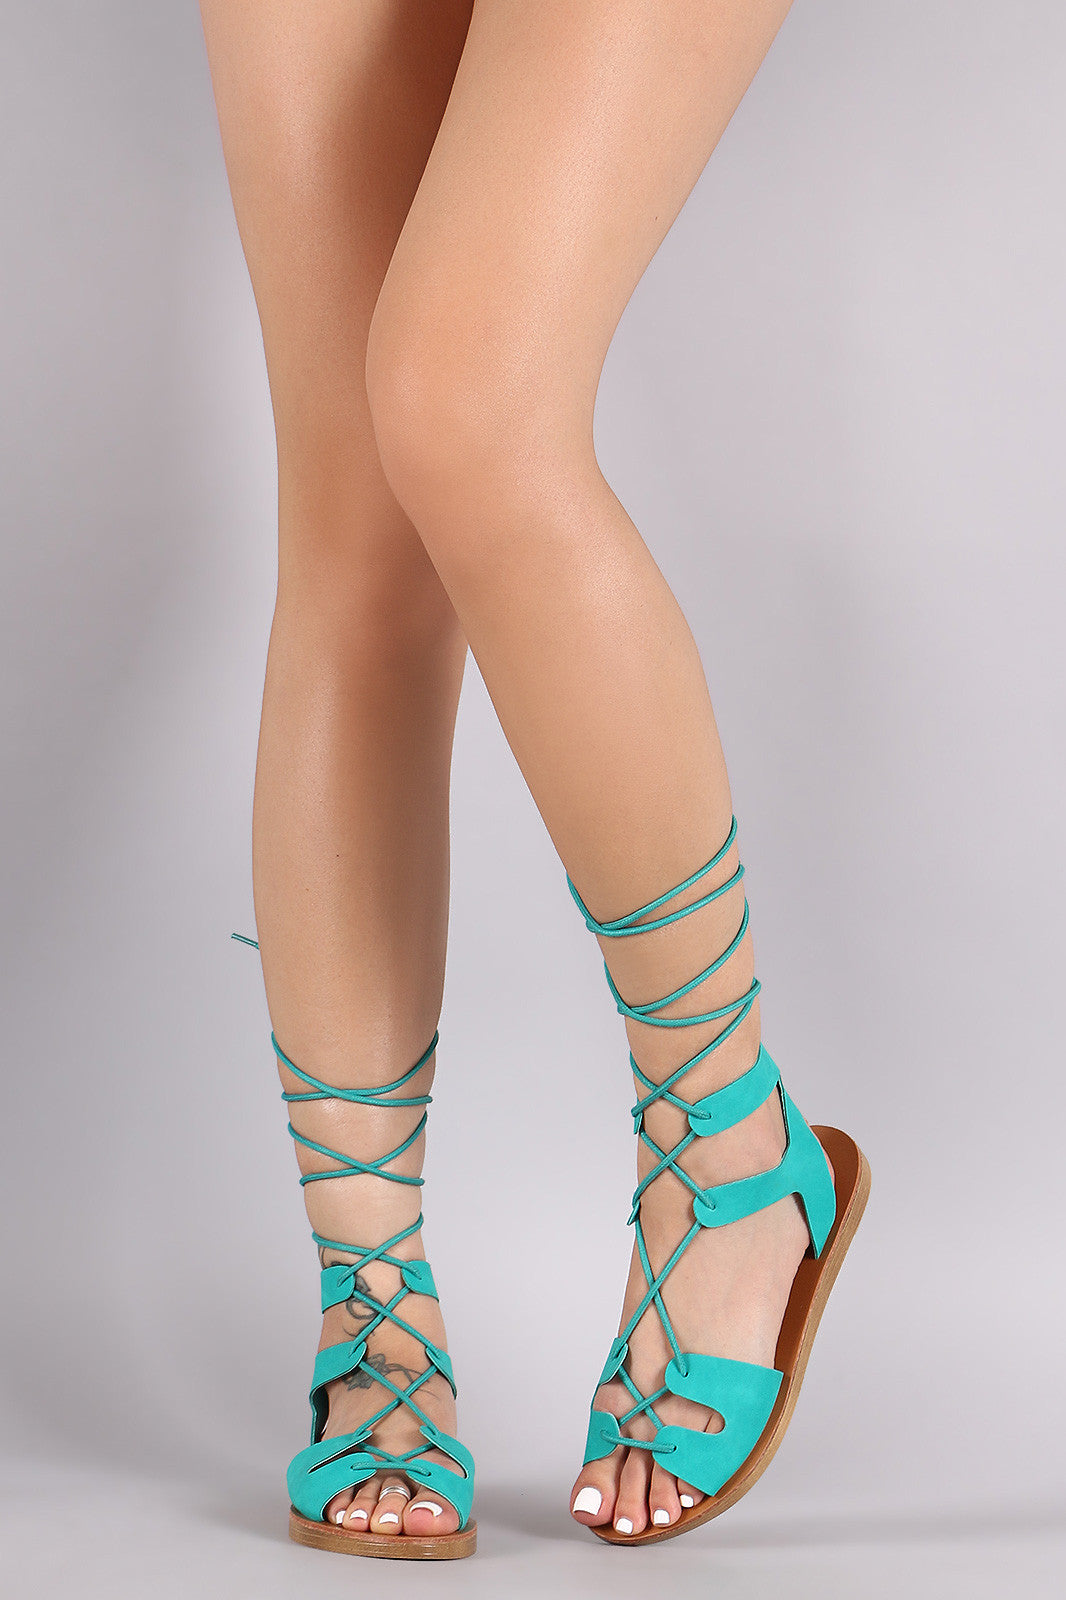 Breckelle Strappy Lace-Up Gladiator Flat Sandal - Thick 'N' Curvy Shop - 2